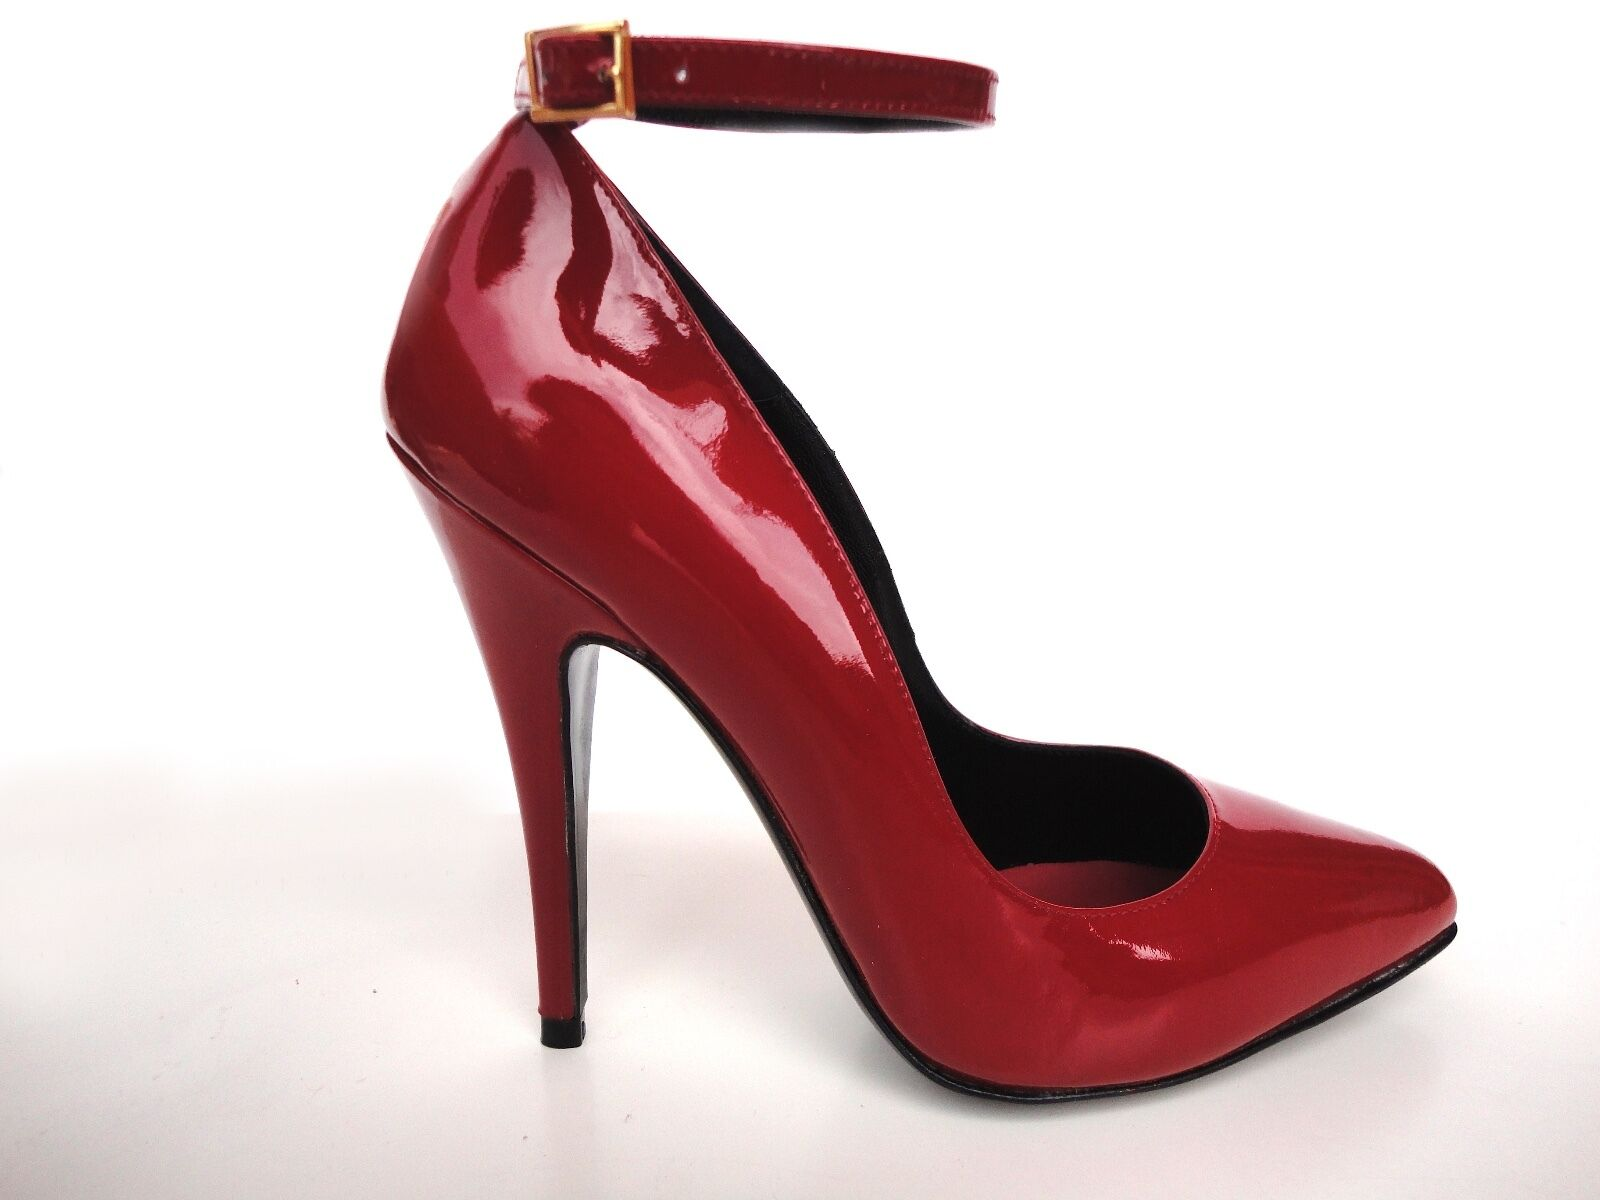 ERNEST ANKLE STRAP HEEL PUMPS ITALY SCHUHE DECOLTE PATENT LEATHER RED red 37,5